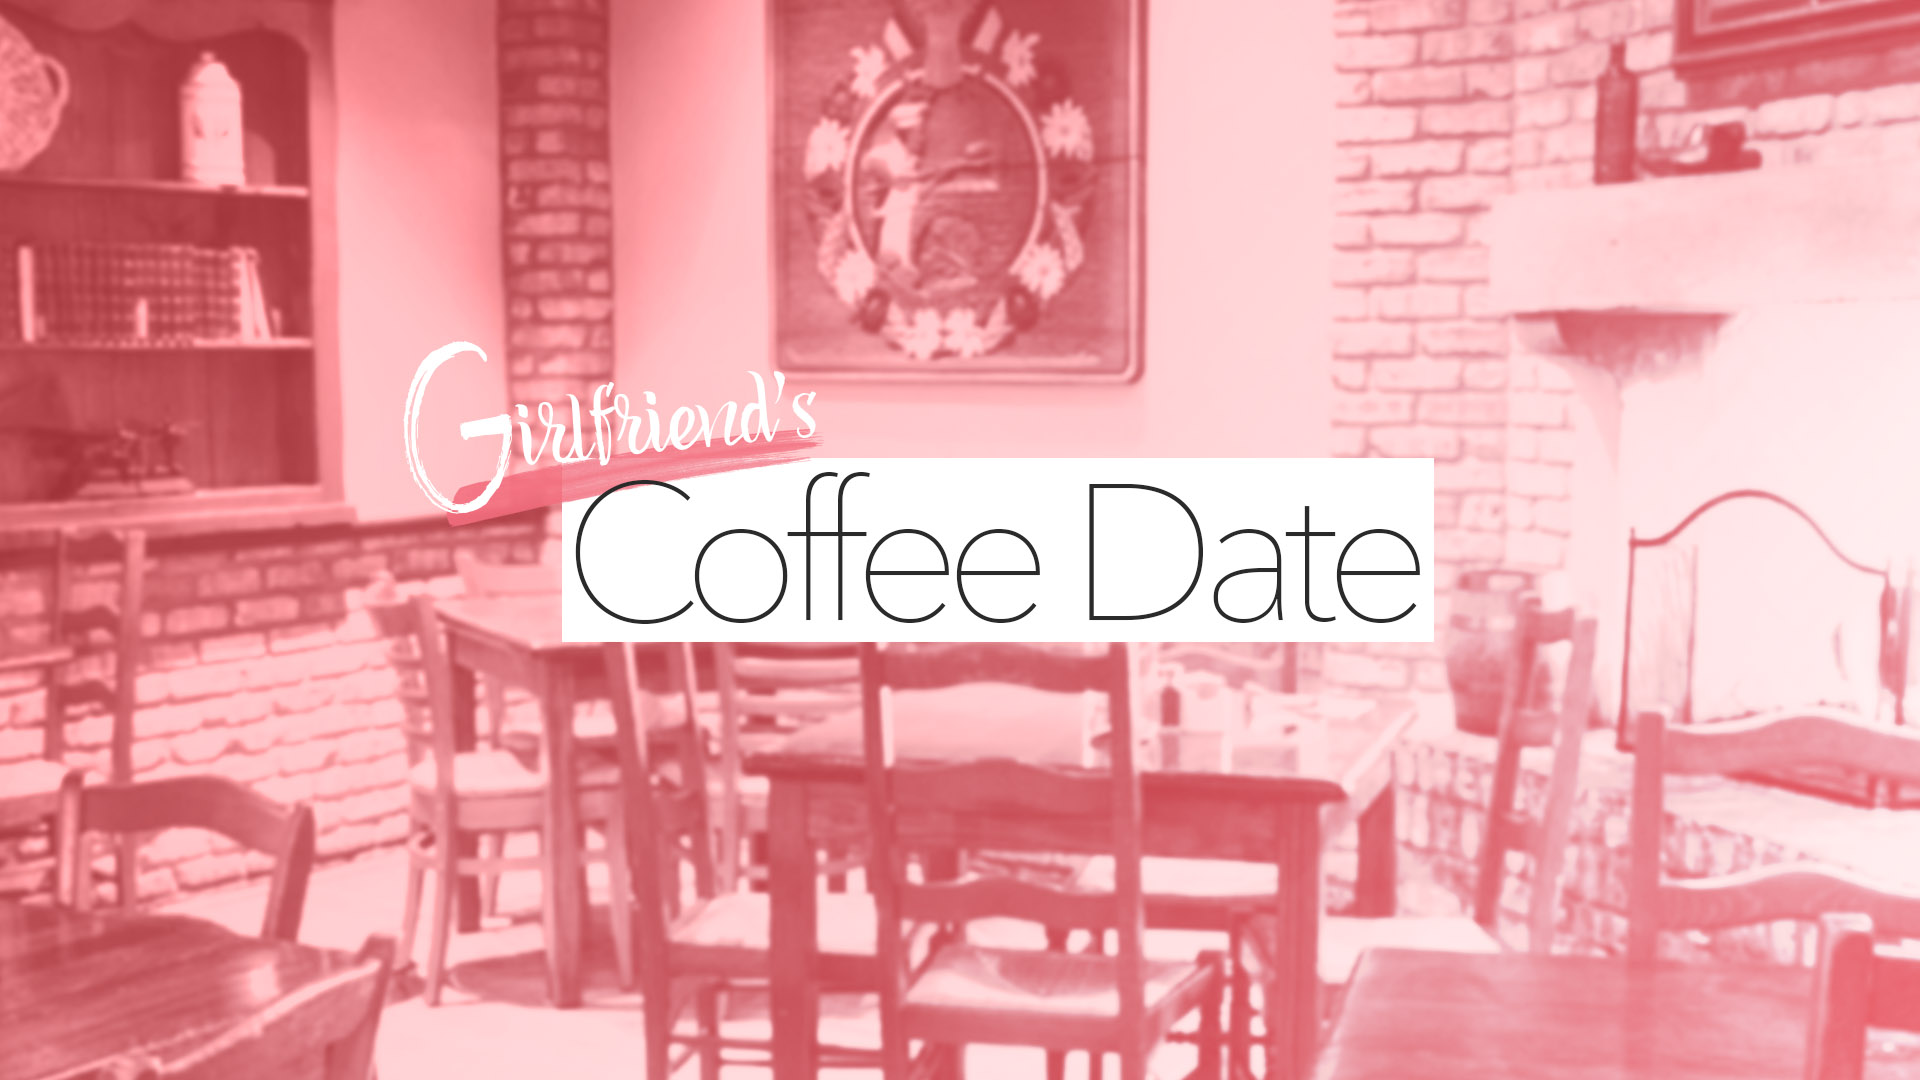 Coffee date slide